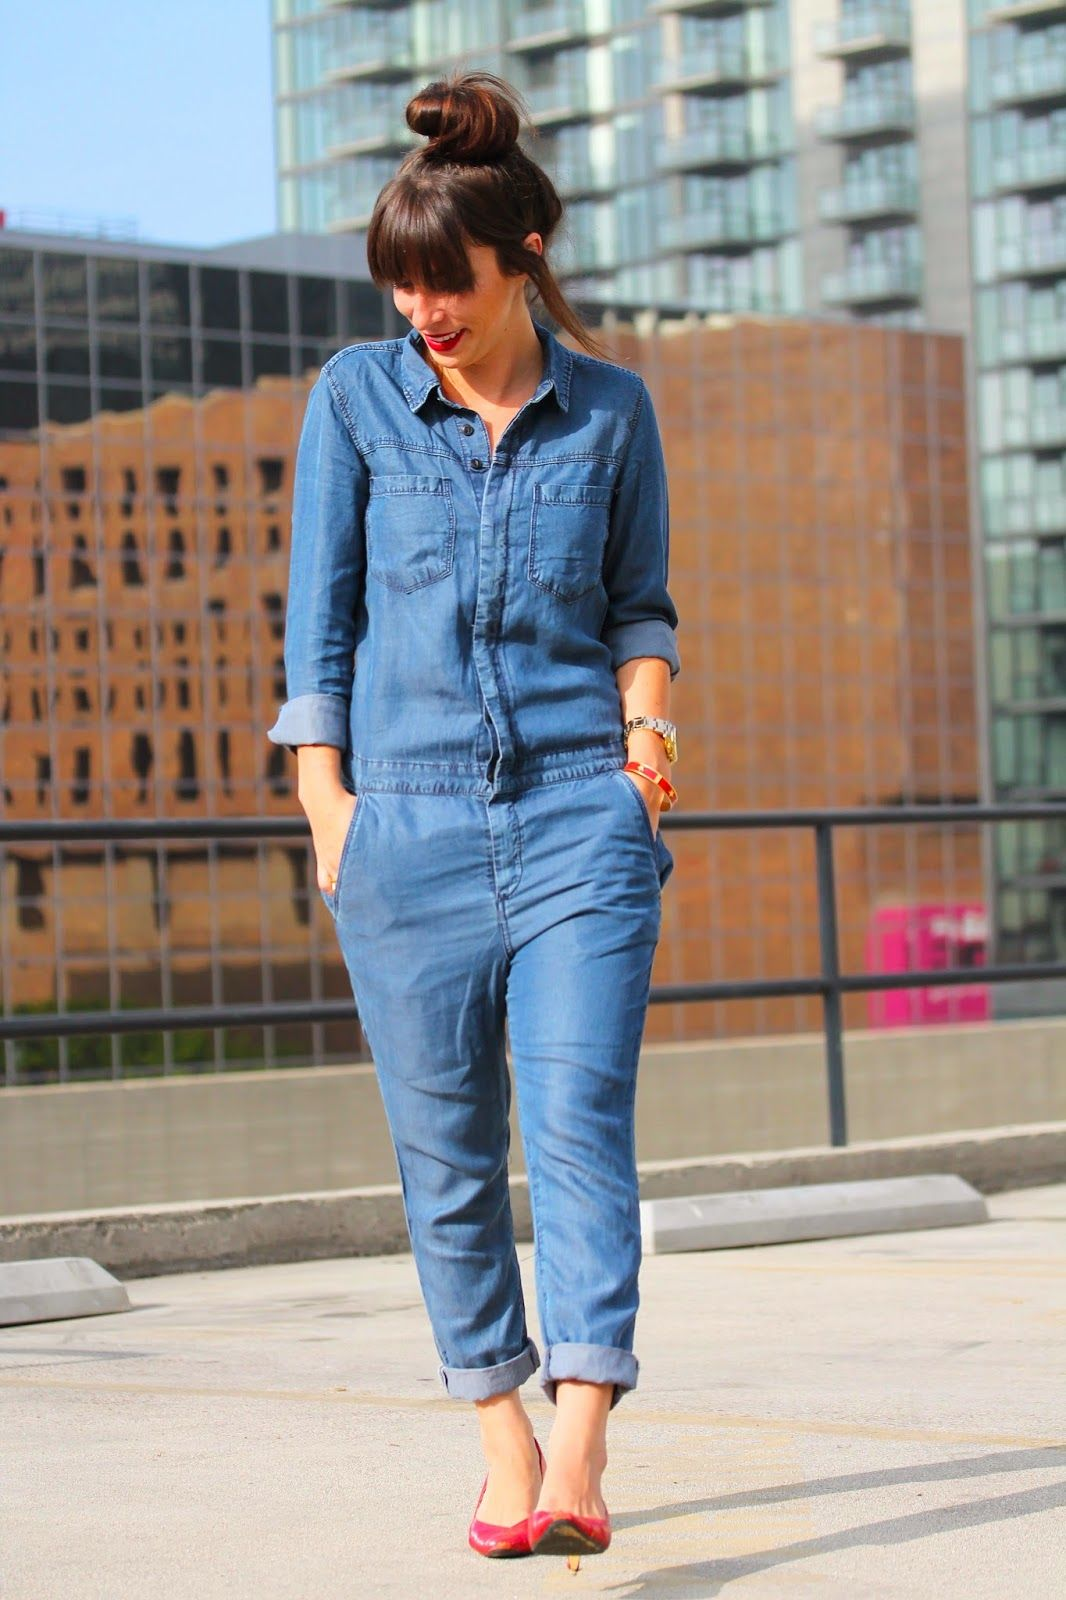 bcc6556aa76 Denim outfit for the new season have become a real hit.